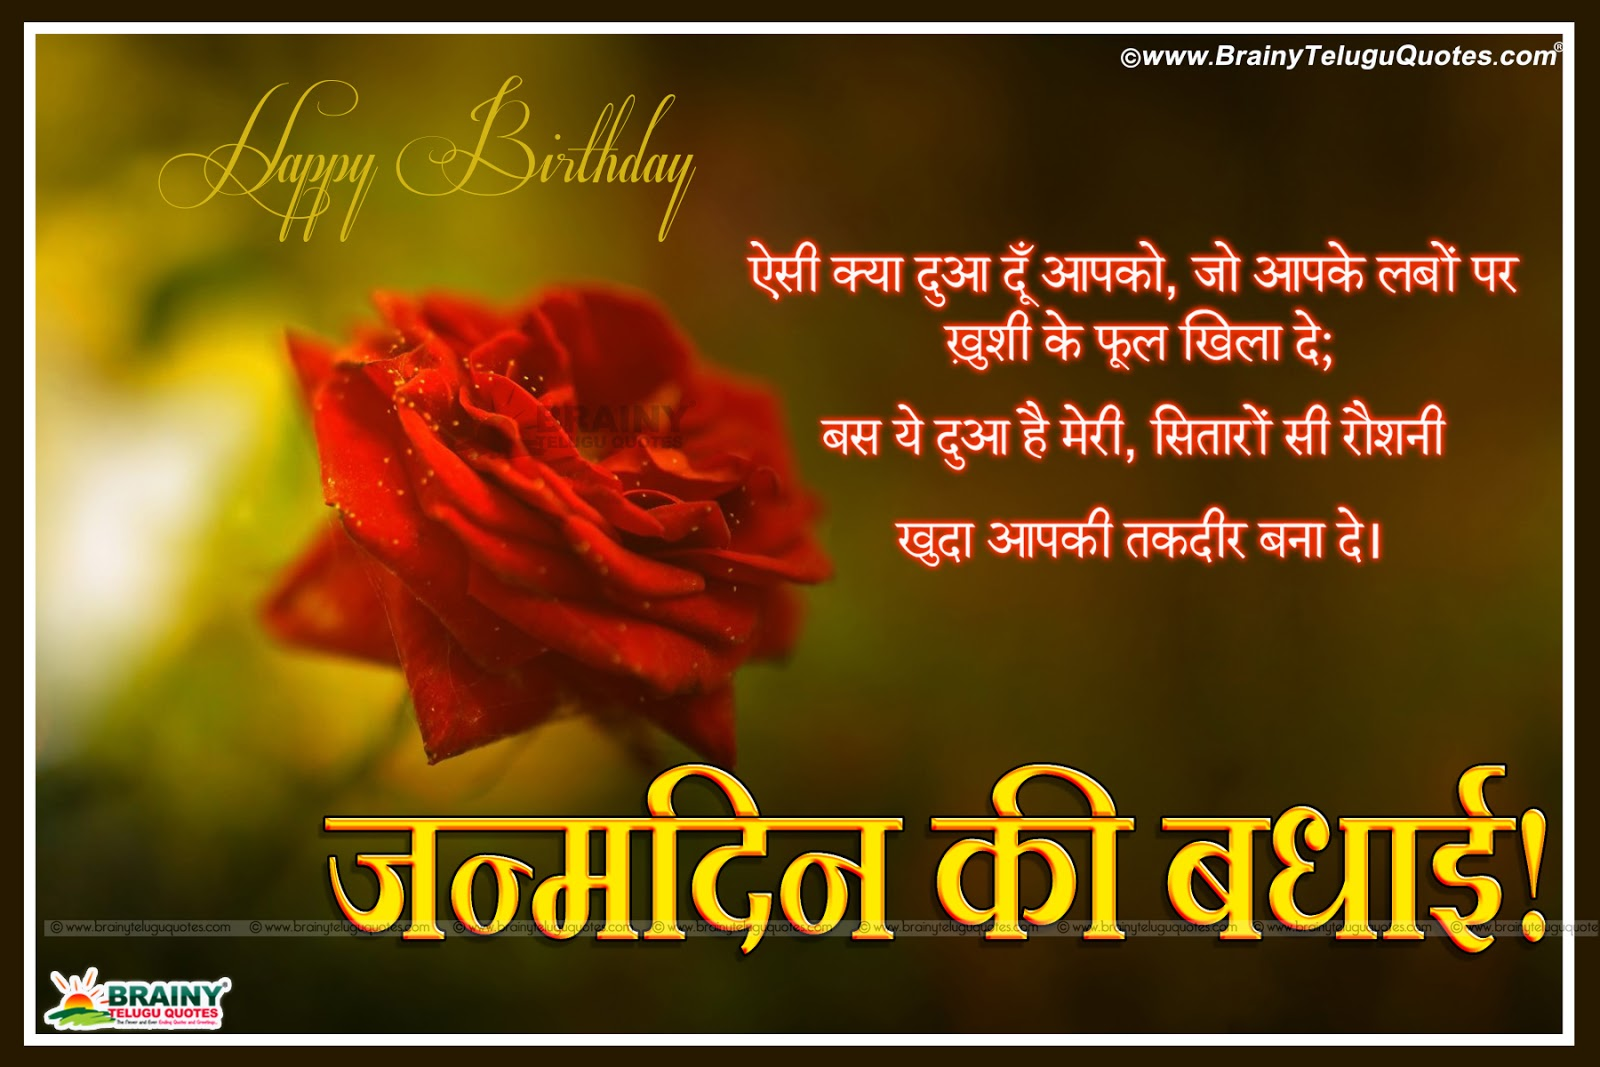 Happy Birthday Funny Funny Happy Birthday Quotes For Friends In Hindi